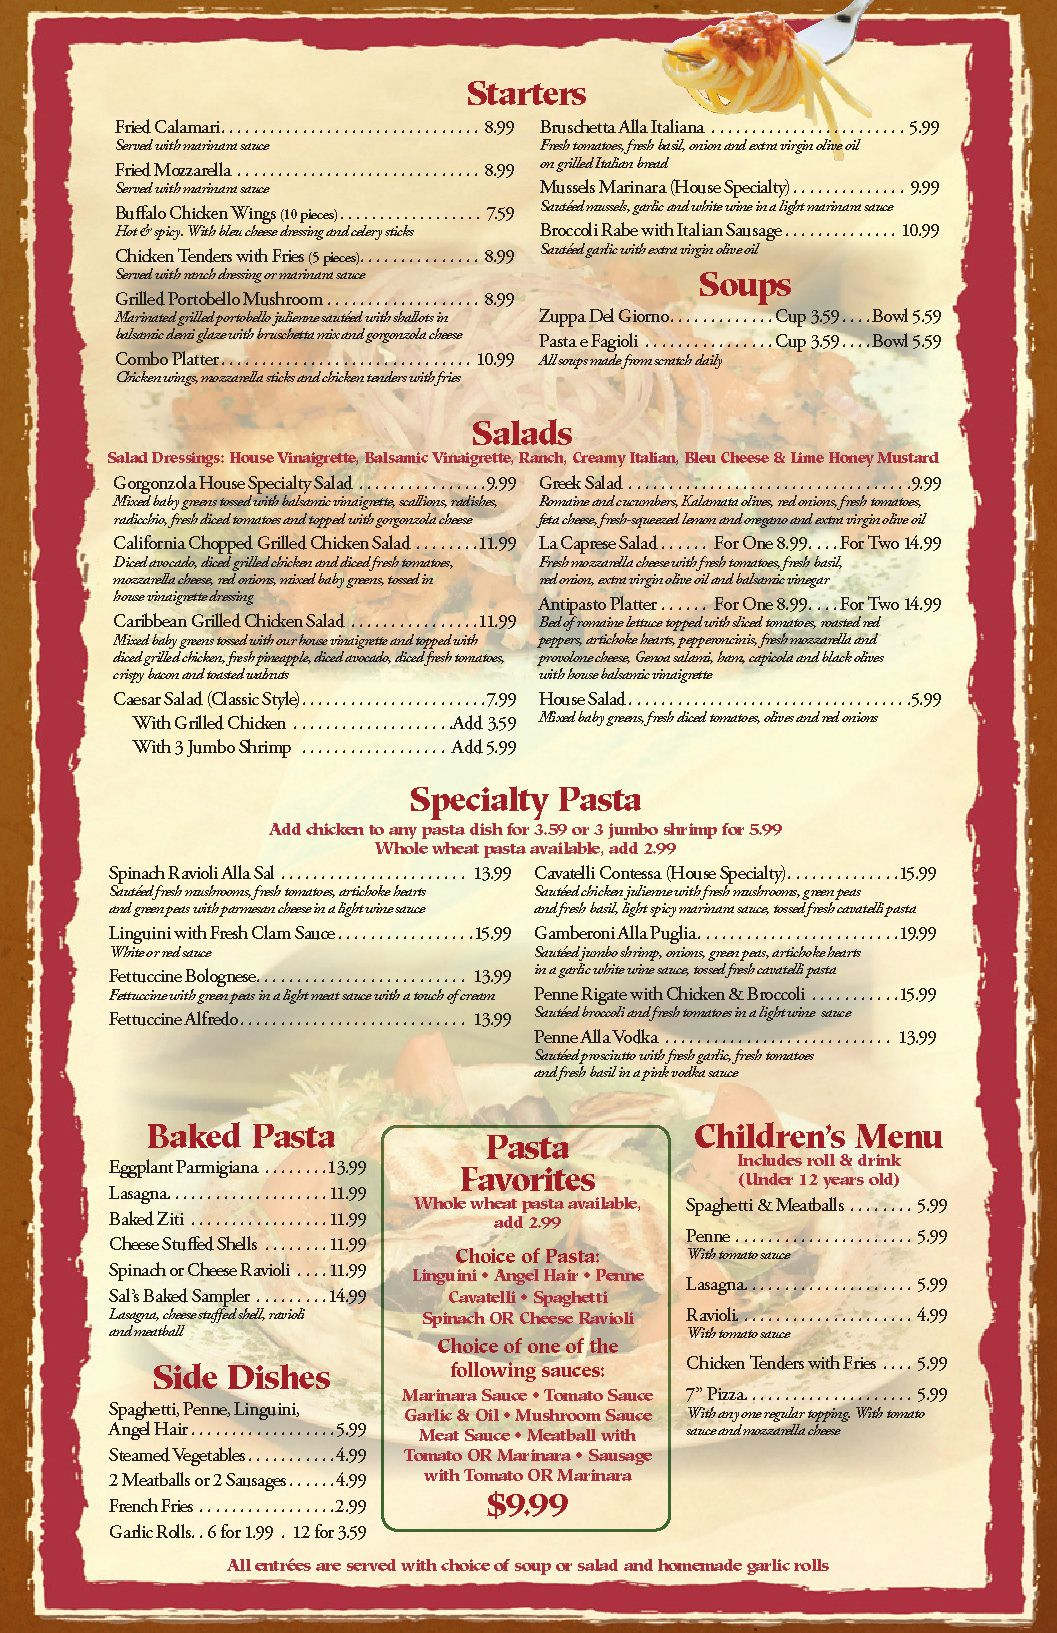 free blank restaurant menu templates restaurant menu With templates for restaurant menus